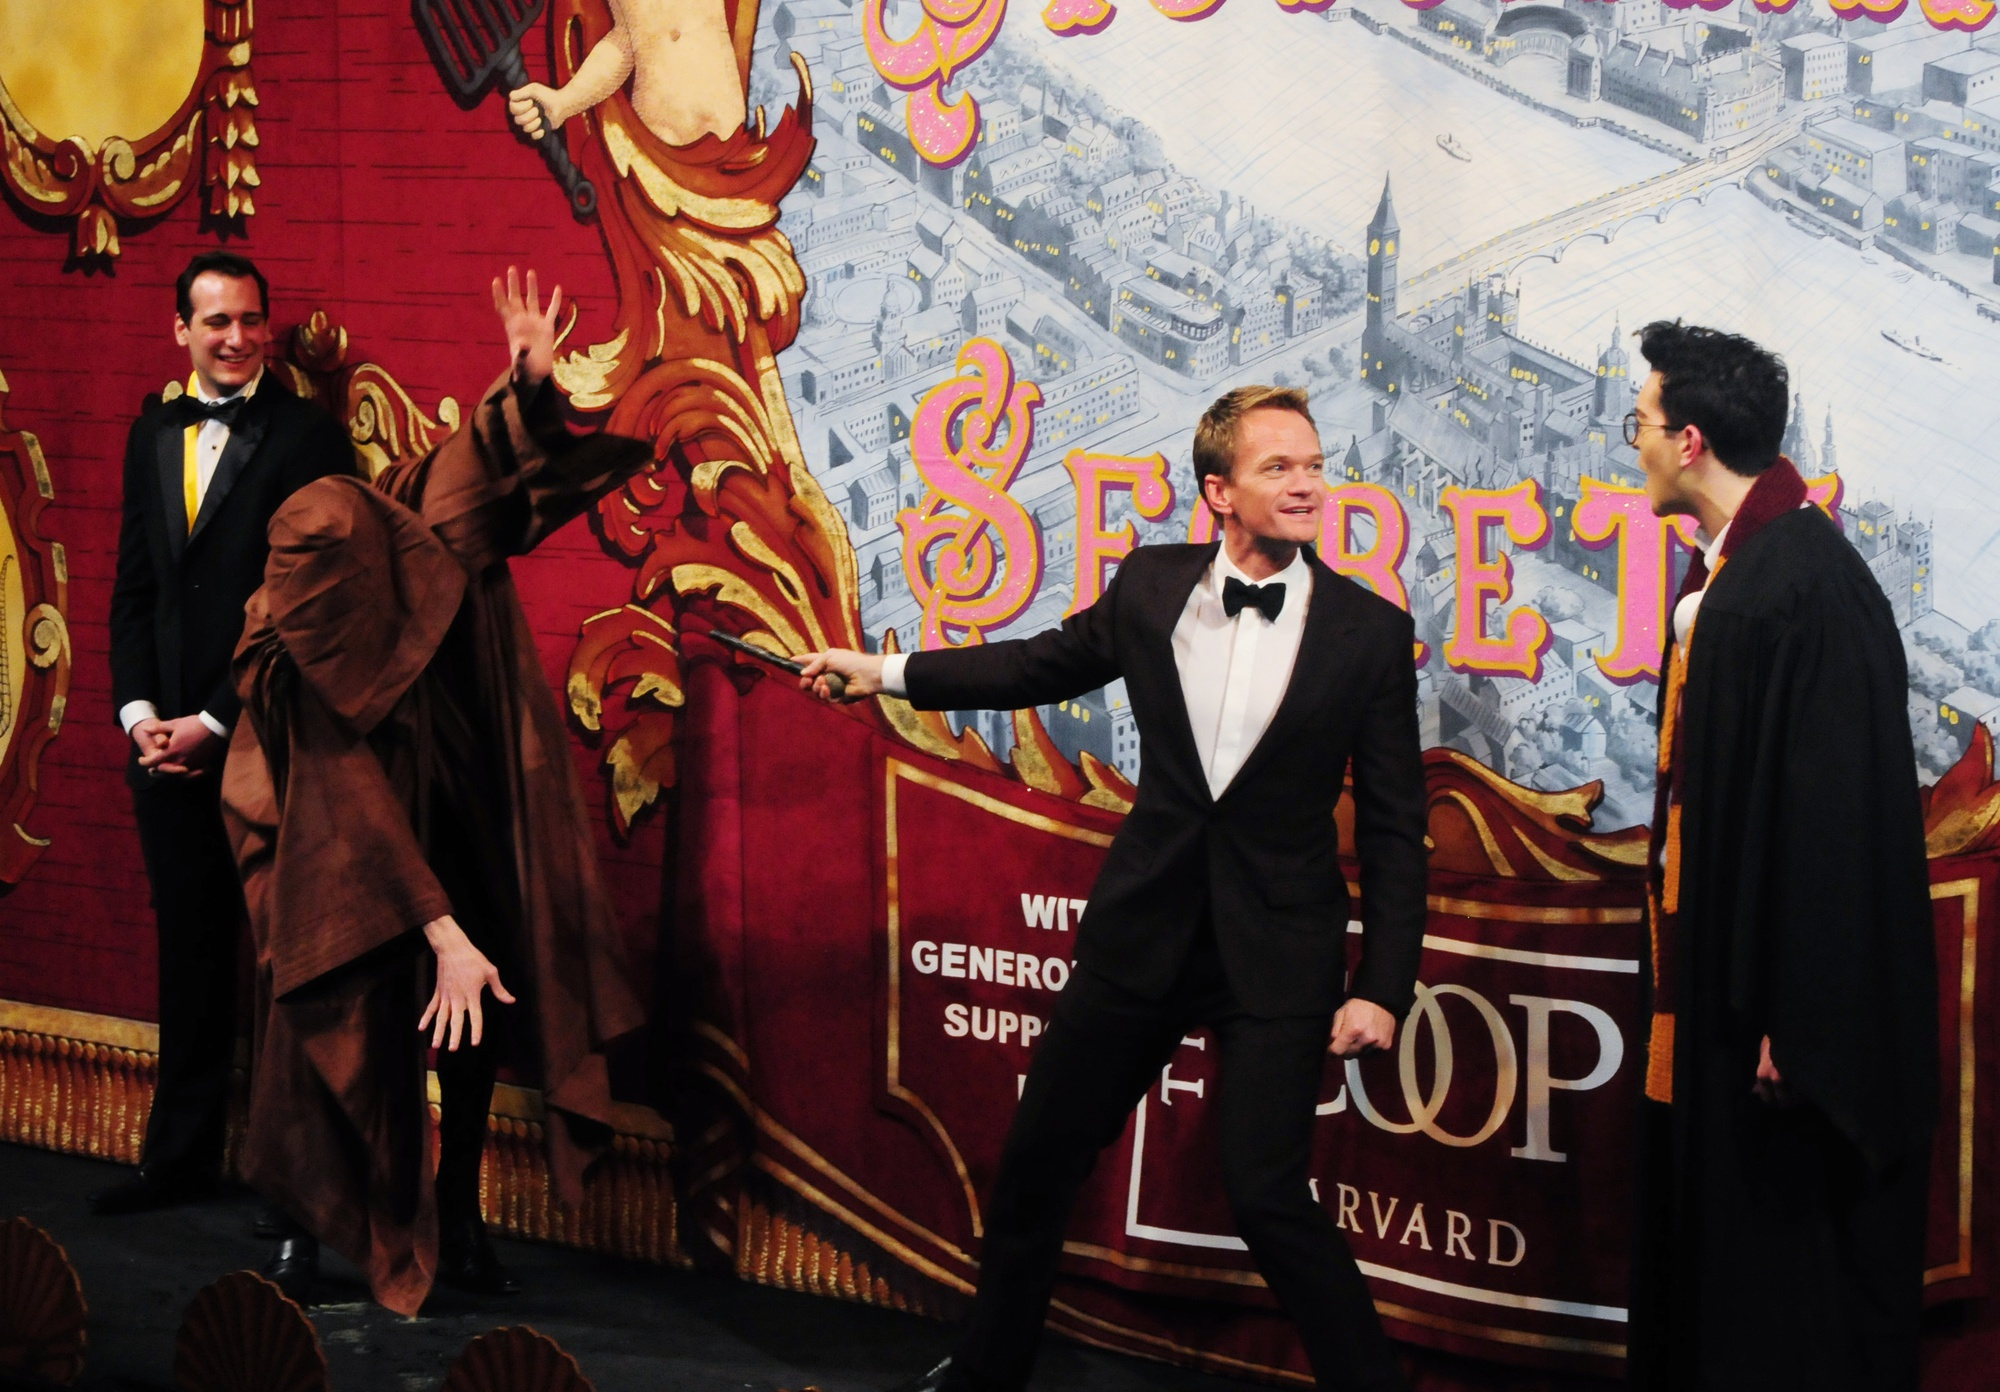 """Hasty Pudding's 2014 Man of the Year, the one and only Neil Patrick Harris, sure earned his award this weekend as he duelled with a dementor in order to secure his """"Pudding Pot."""" And they say people will do crazy things to get recognition from Harvard! We just hope our beloved Harv-warts picks up on this idea and that we can expect to see Transfiguration classes offered next semester..."""